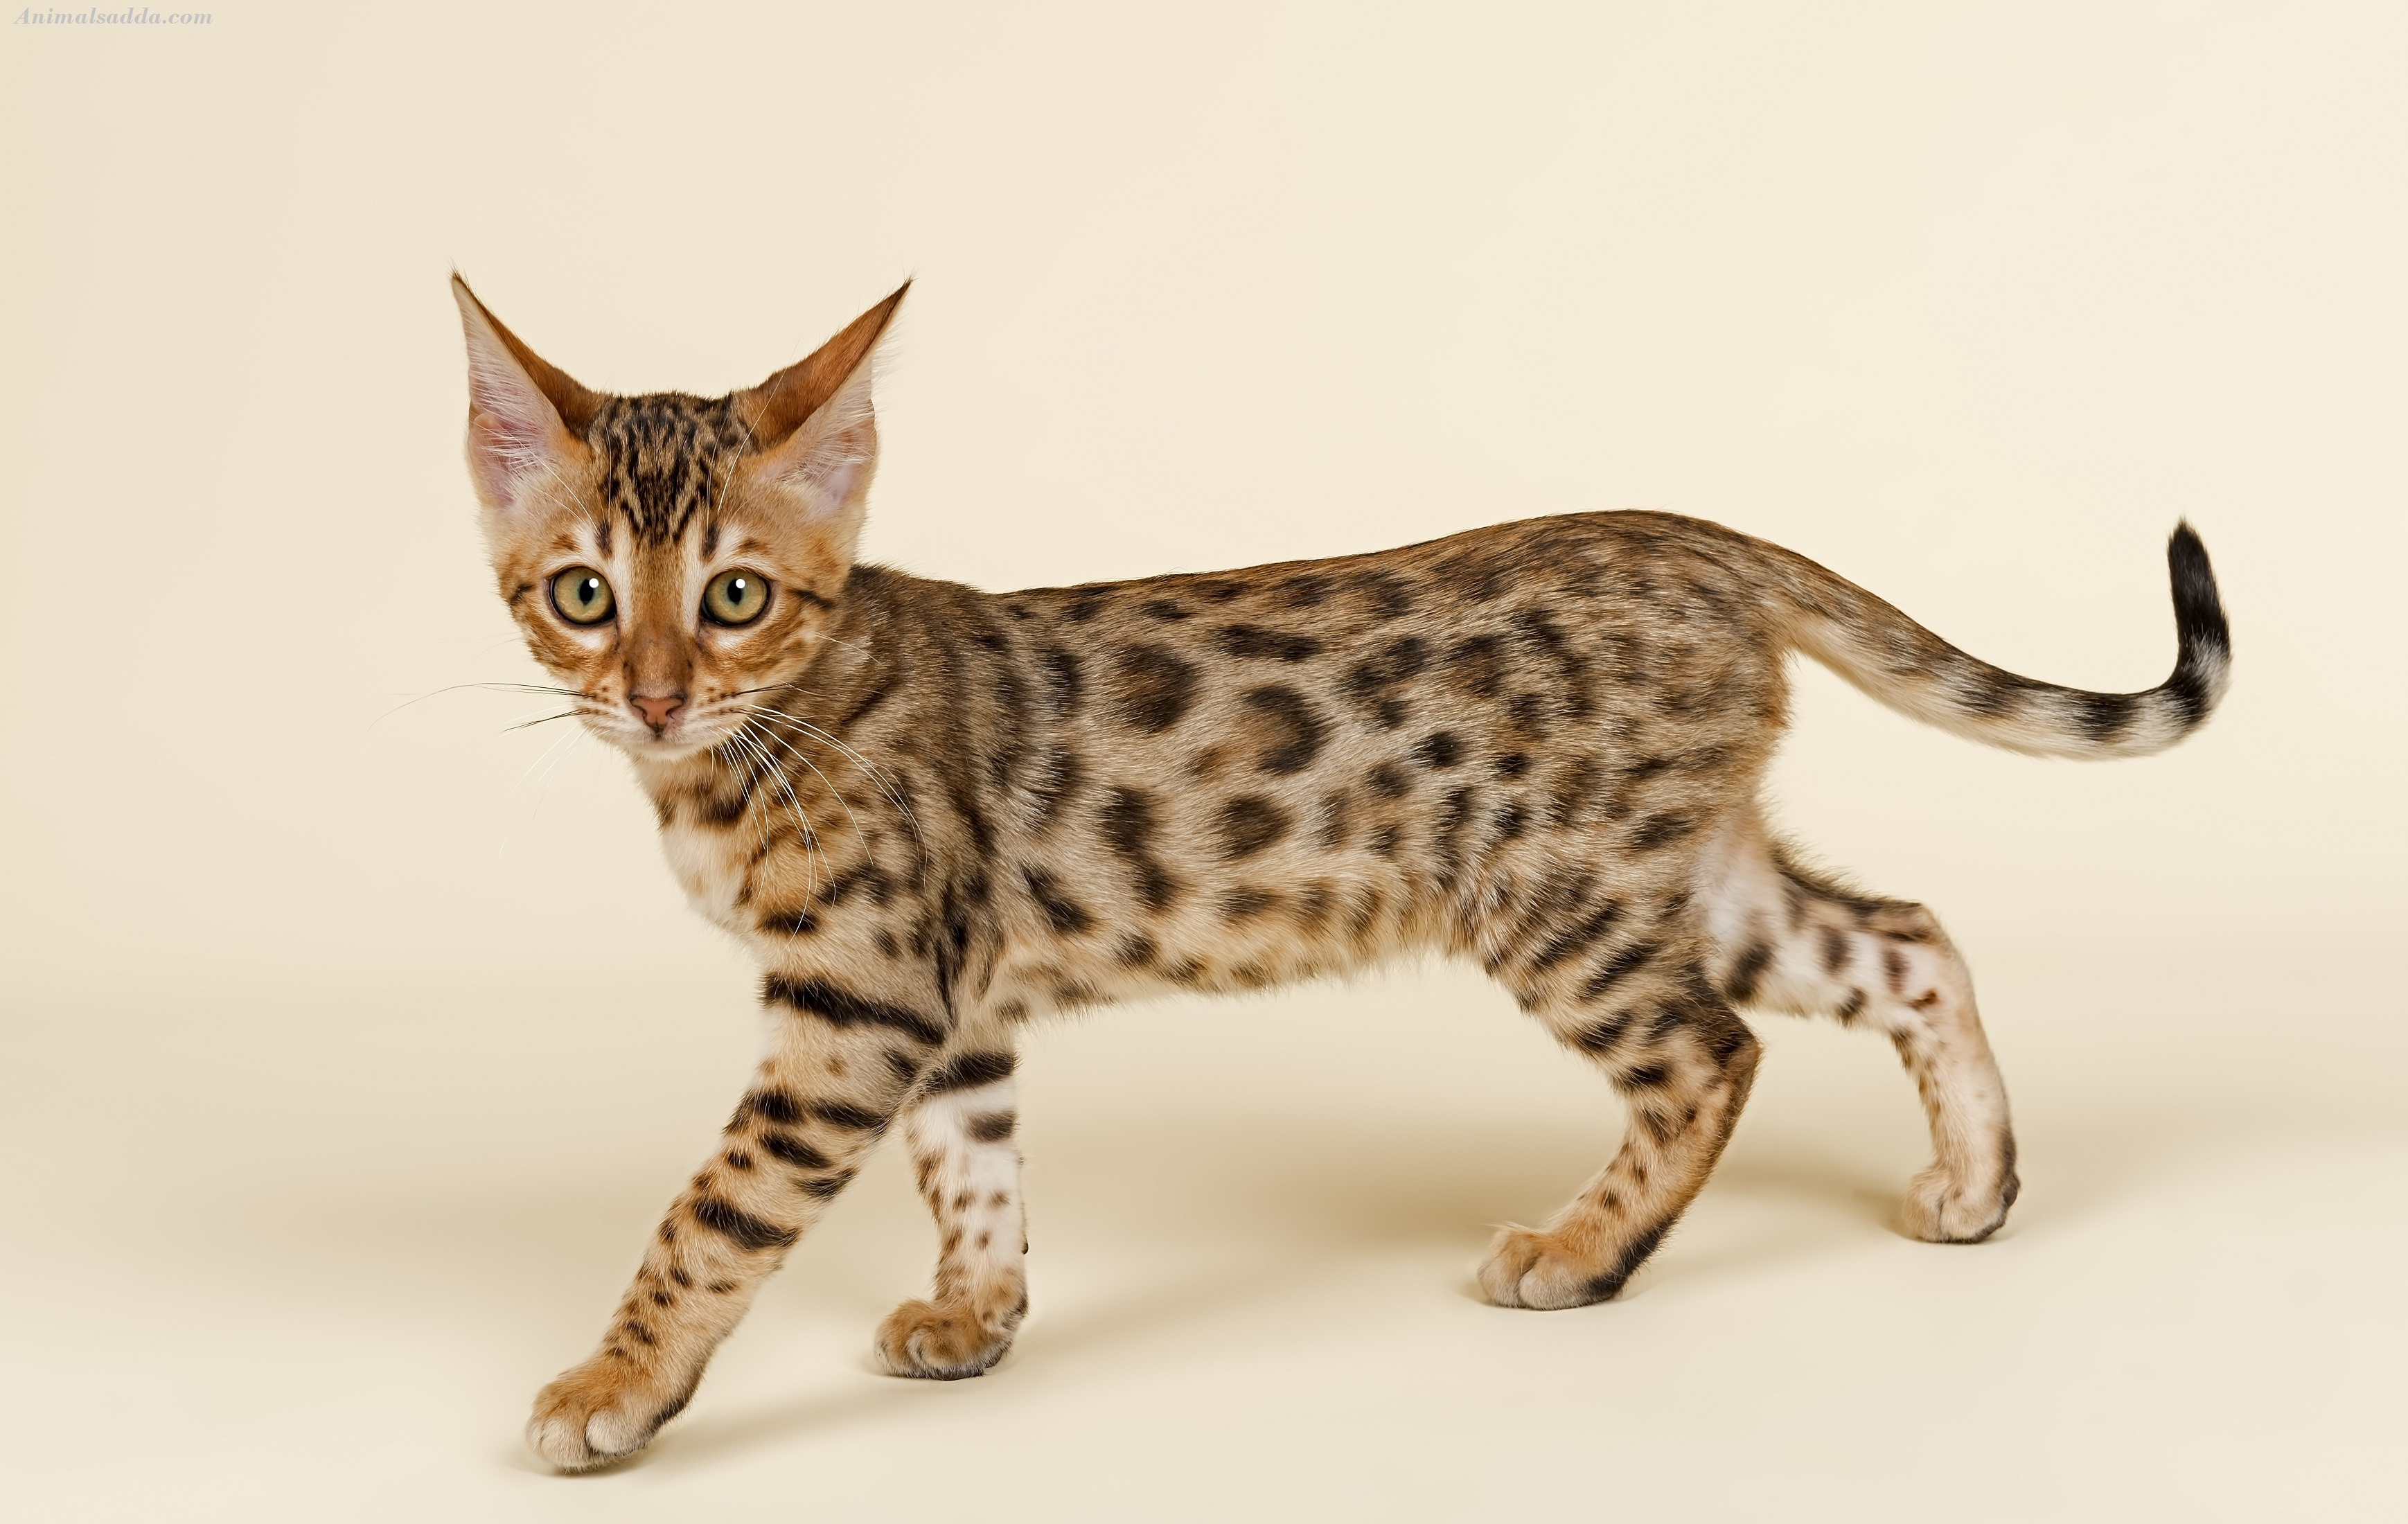 Information on the bengal cat